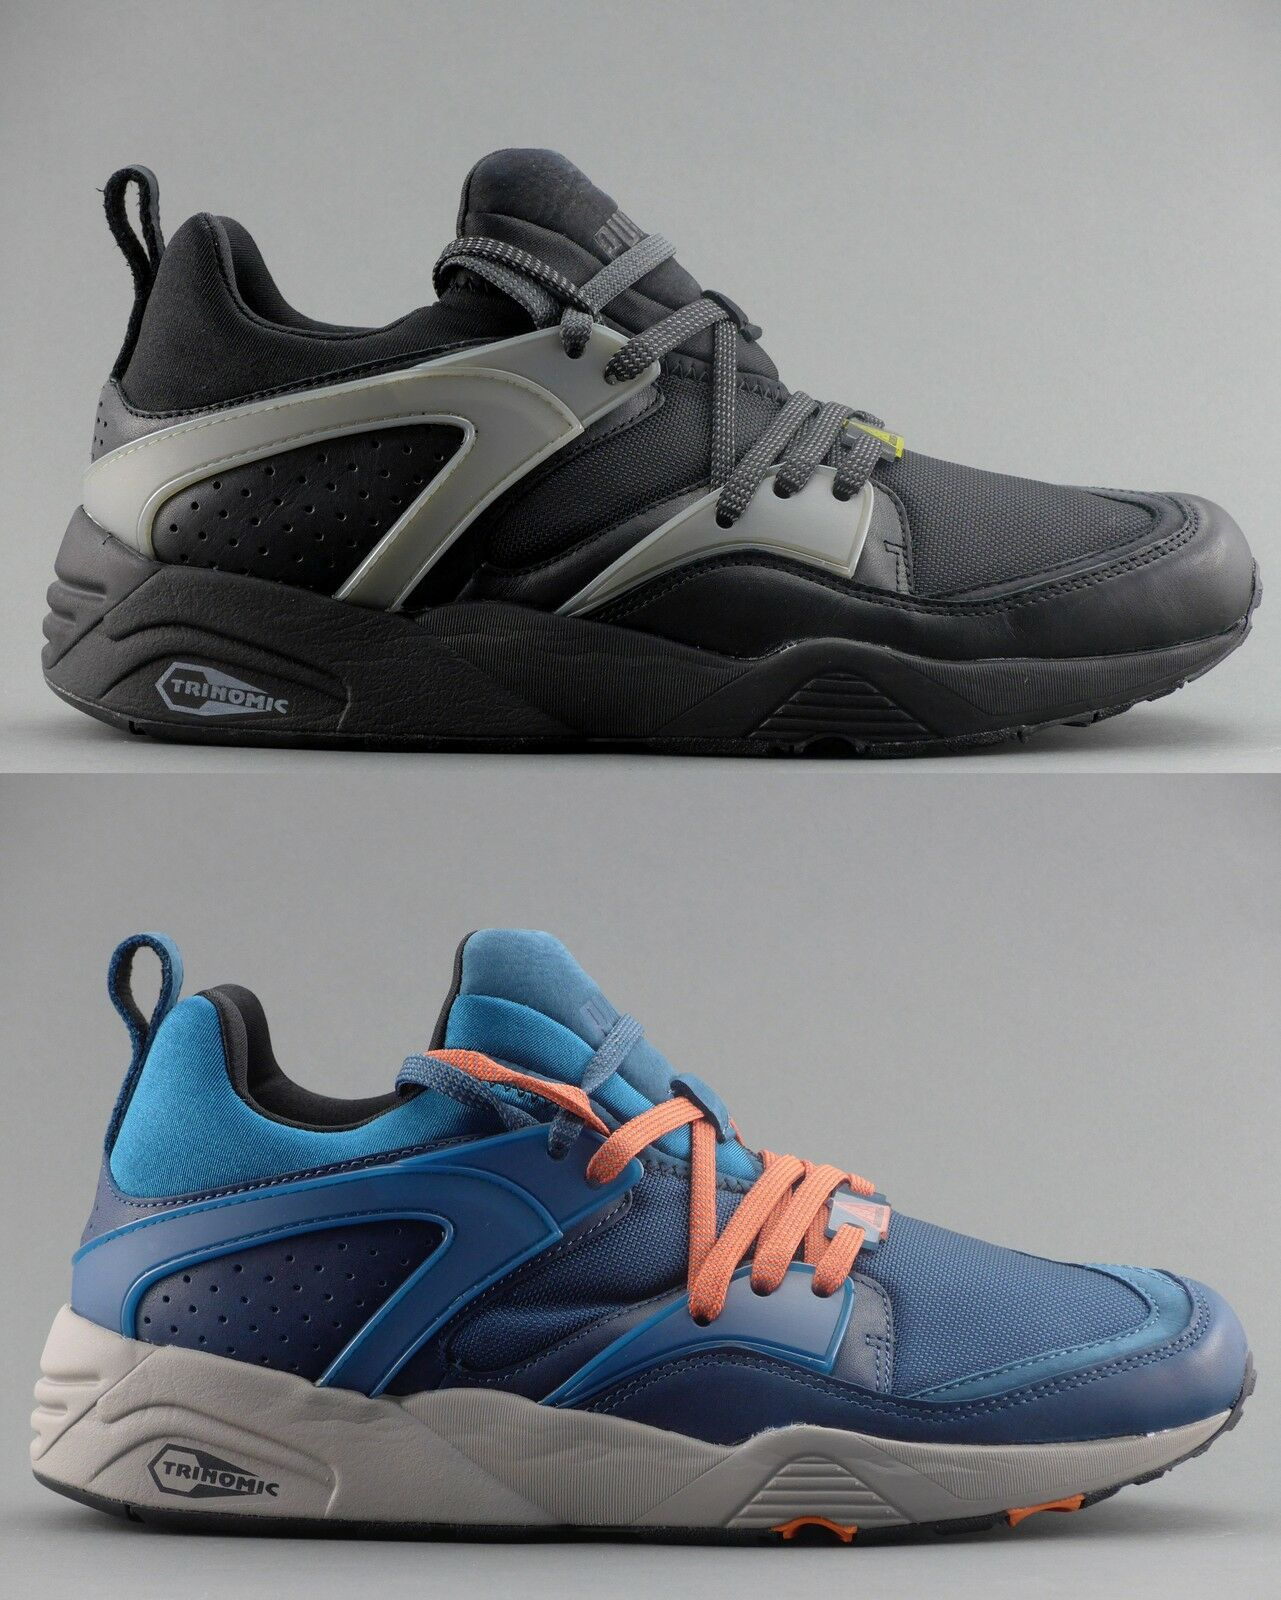 PUMA Blaze of Glory 358818 Leather Sneaker Scarpe Uomo 358818 Glory NUOVO 23199f